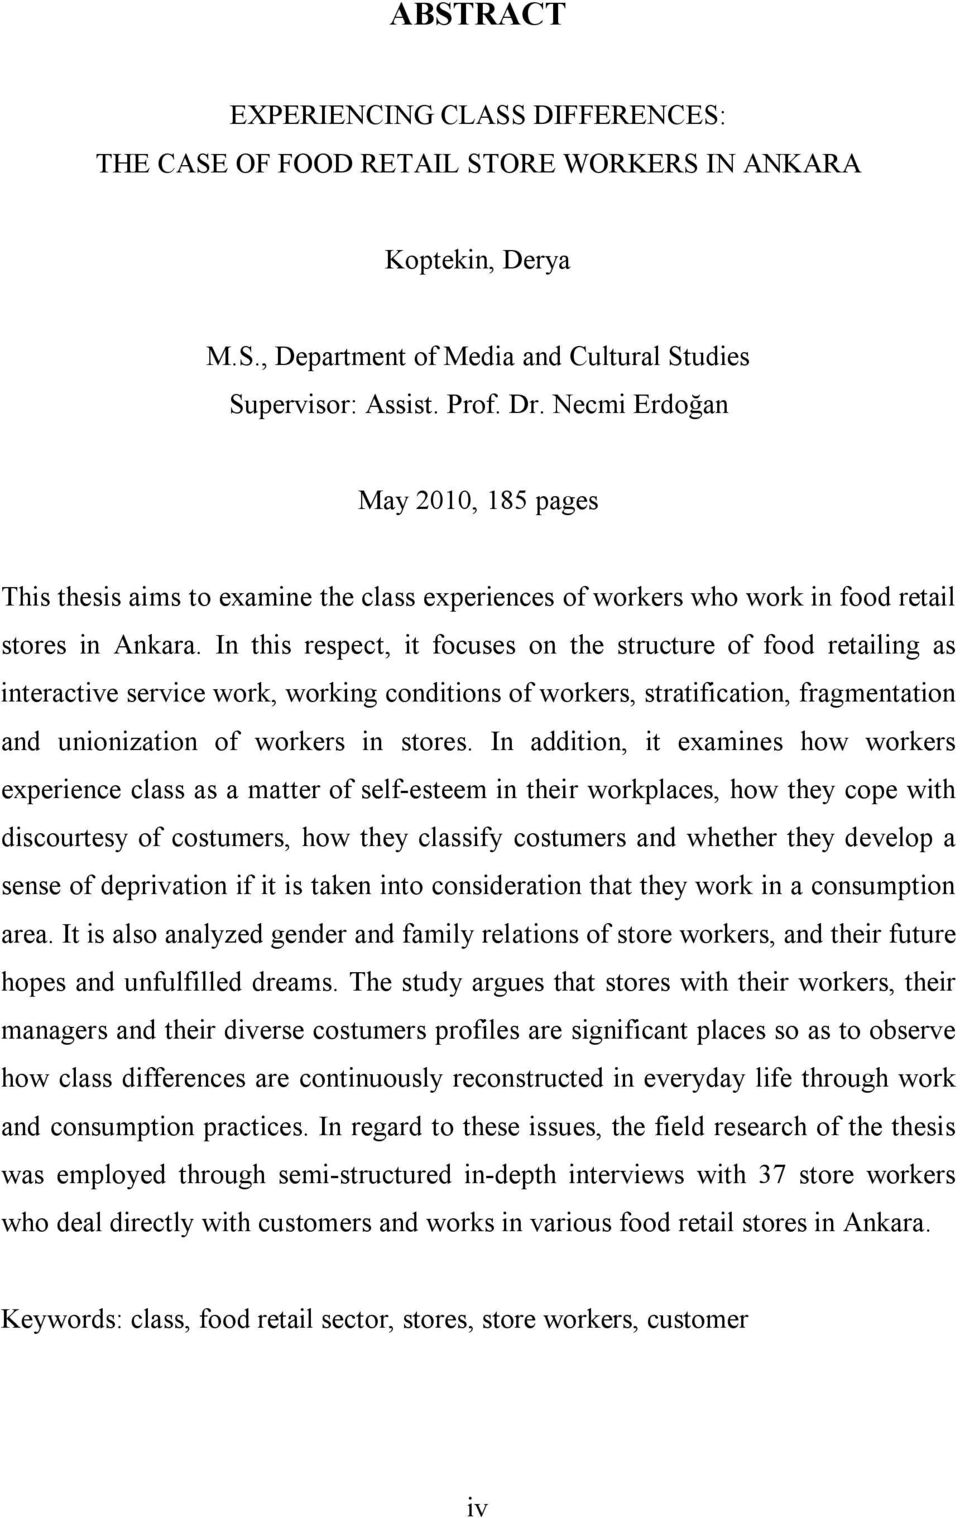 In this respect, it focuses on the structure of food retailing as interactive service work, working conditions of workers, stratification, fragmentation and unionization of workers in stores.